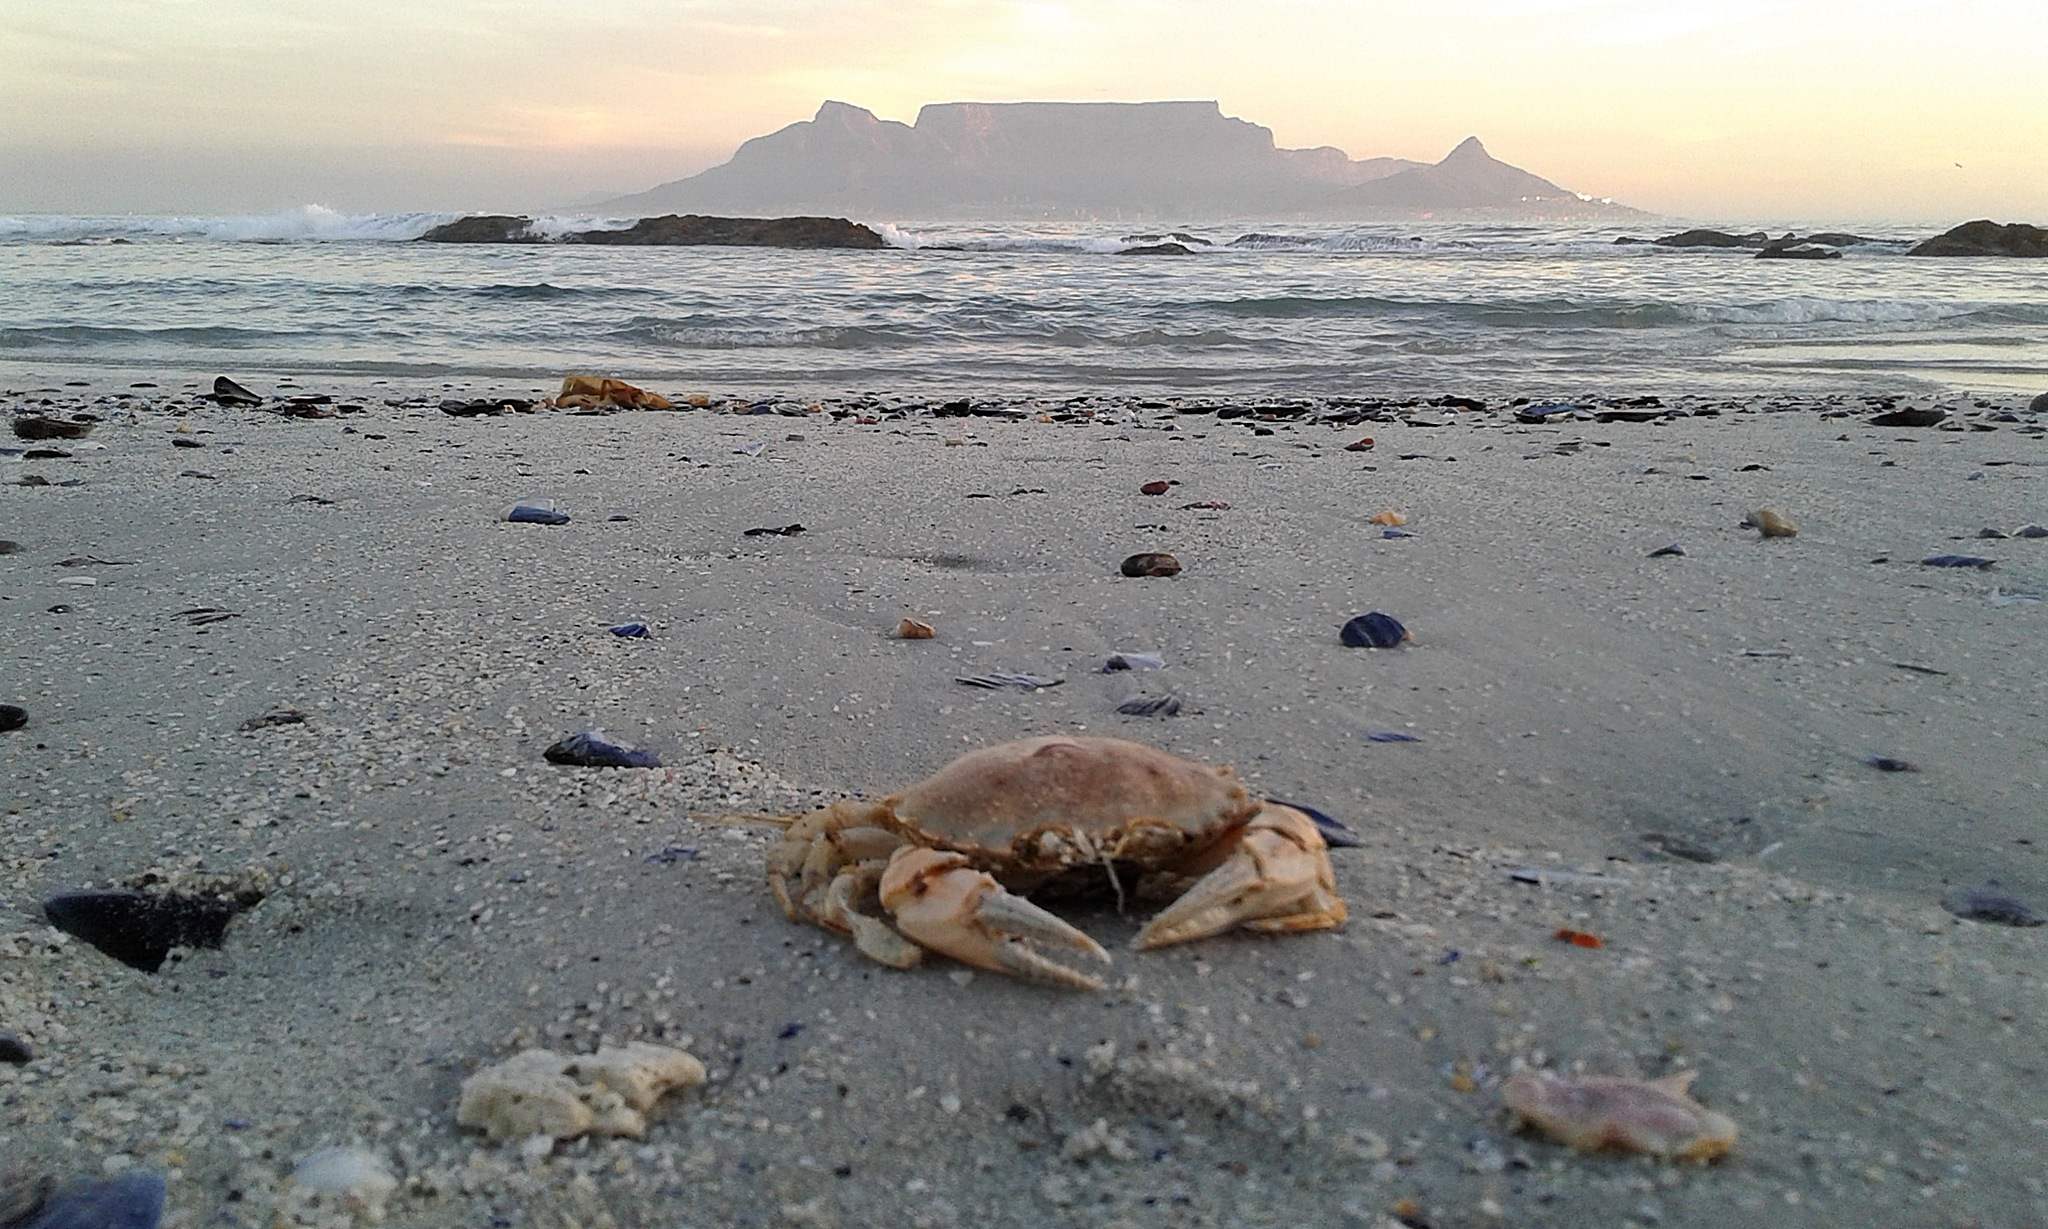 Crab on the beach by Marcel